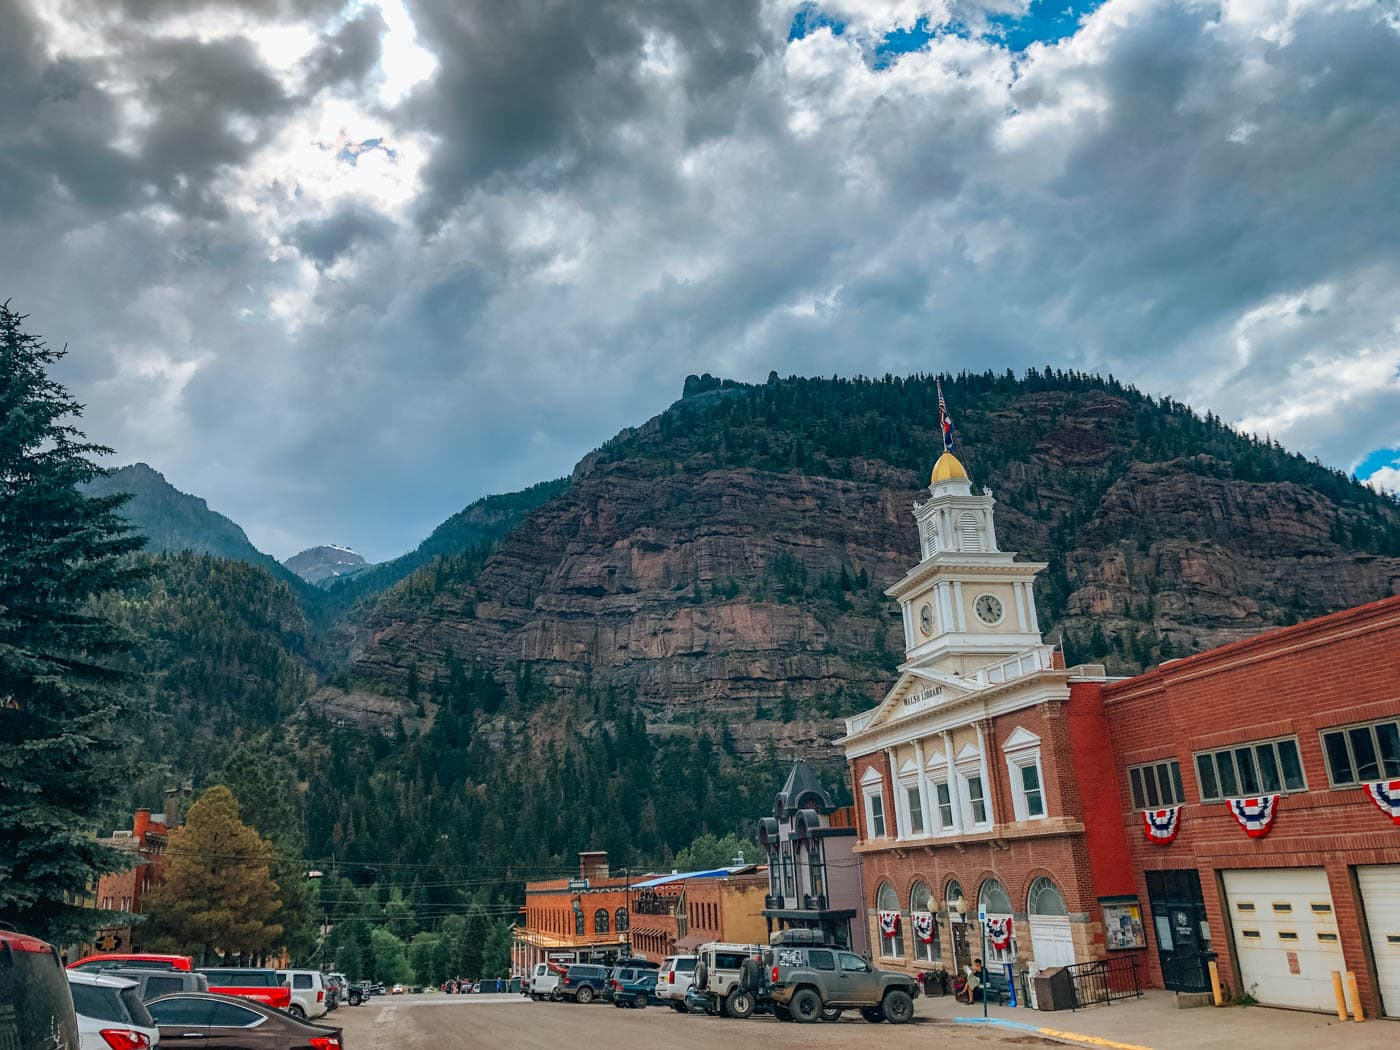 view of the town of ouray, colorado